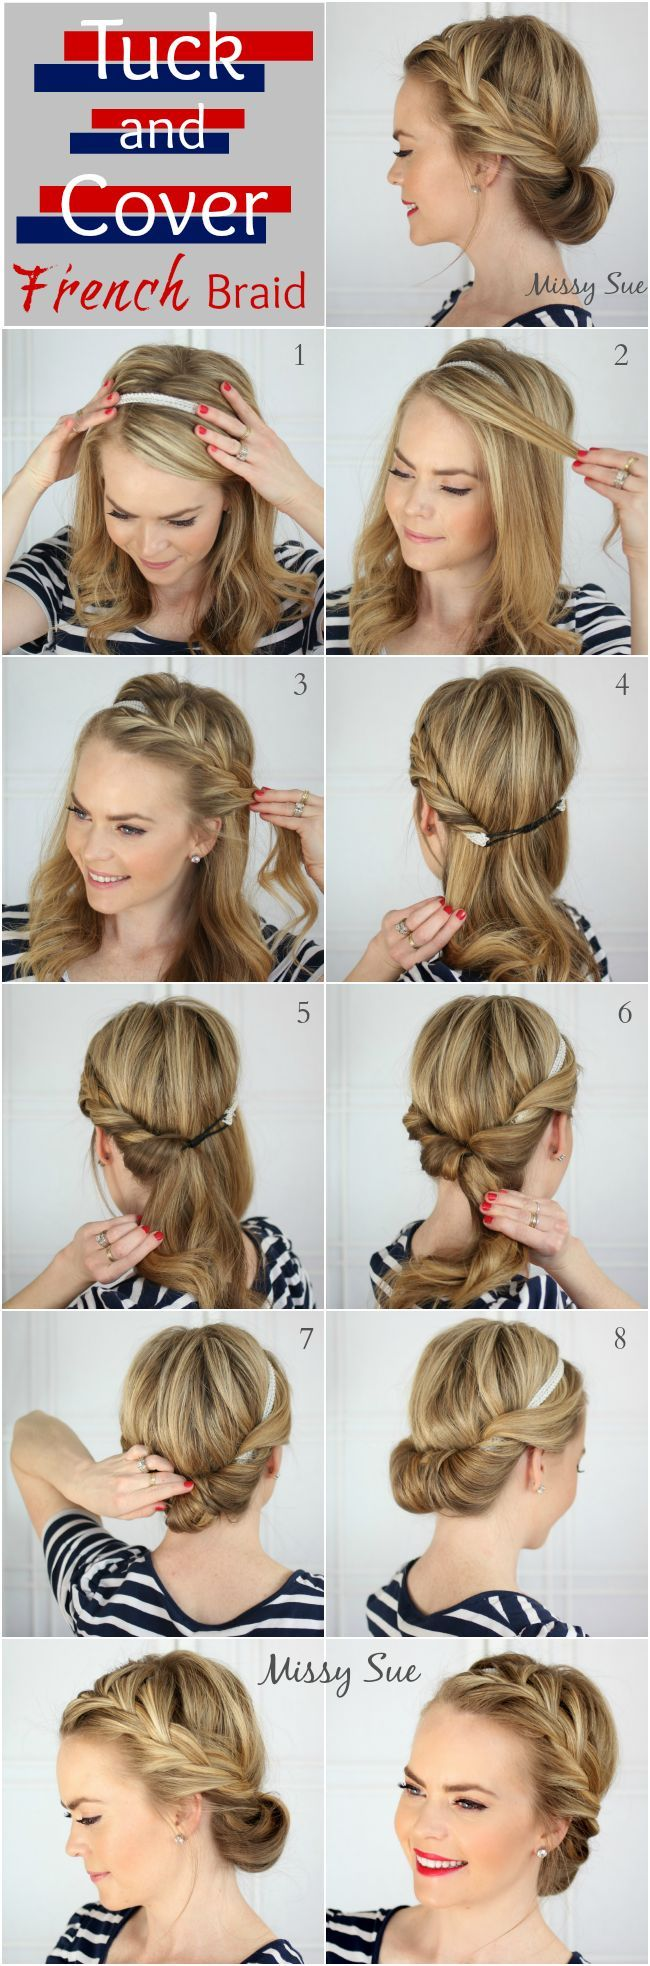 DIY Wedding Hairstyles to Try on Your Own - Part II - Featured Tutorial via Missy Sue